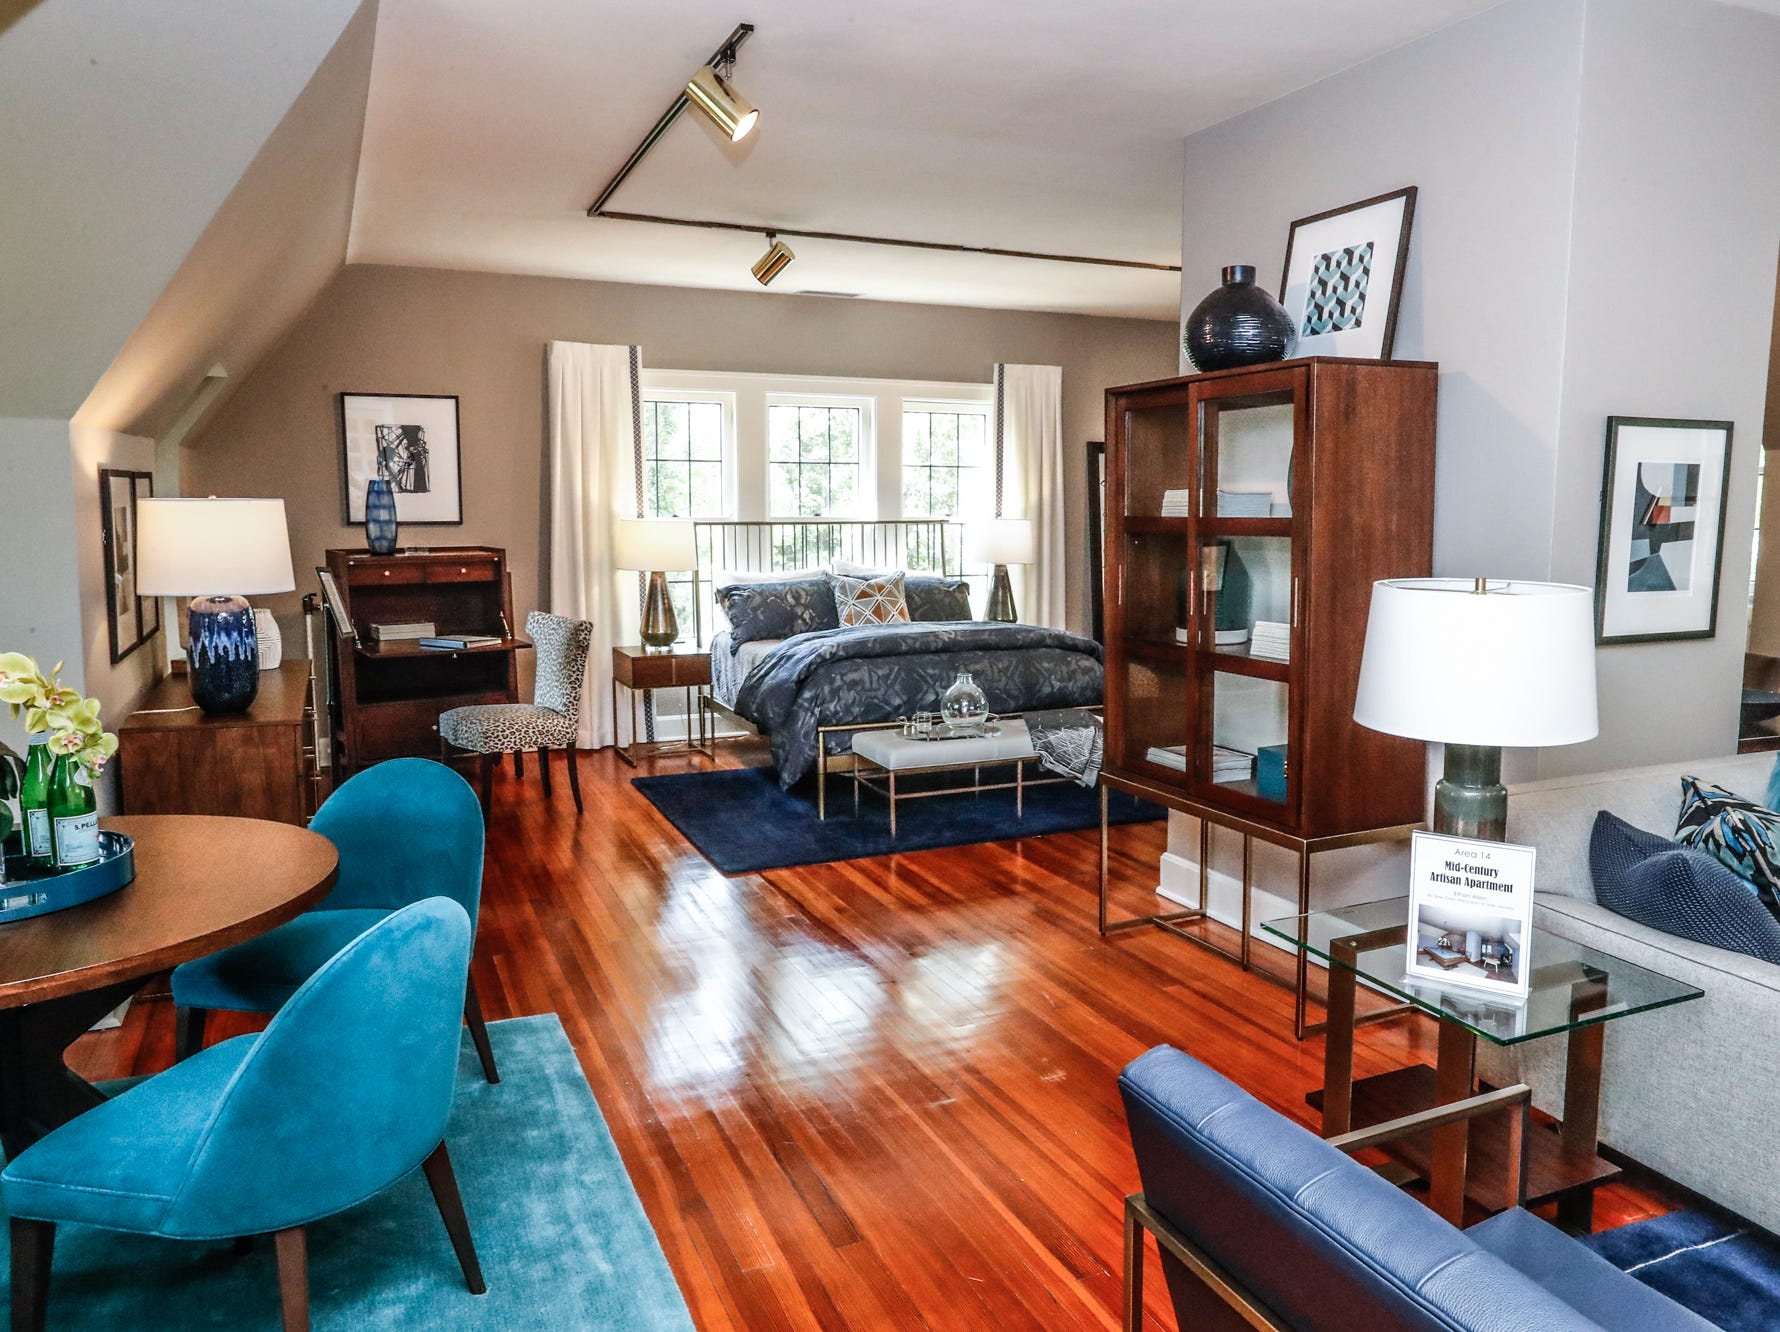 """The """"Mid-Century Artisan Apartment"""", designed by Susie Clase, Mary Larson, and Linda Denney, of Ethan Allen inside The 58th annual St. Margaret's Hospital Guild Decorators' Show House and Gardens, located at 4160 Washington Blvd., Indianapolis, on Wednesday, May 8, 2019."""